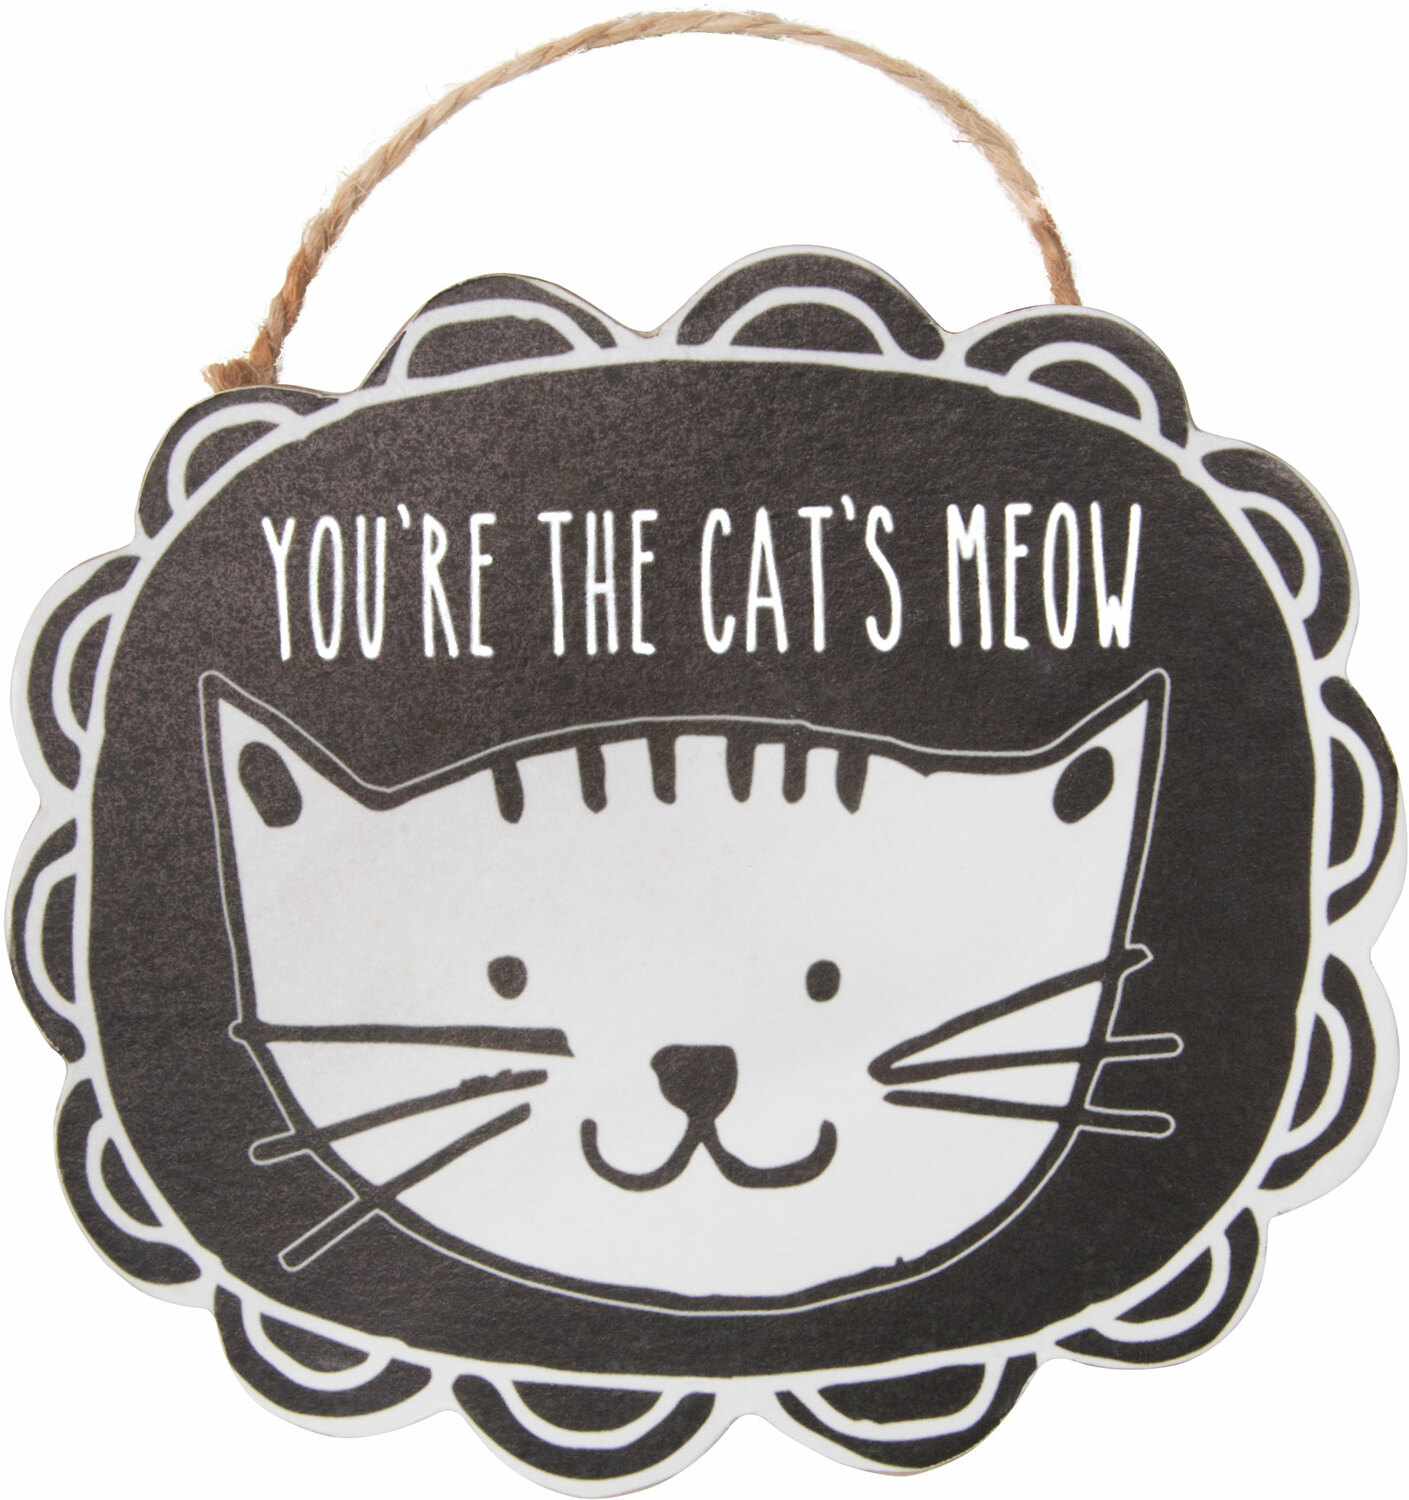 "Cat's Meow by It's Cats and Dogs - Cat's Meow - 4"" Ornament with Magnet"